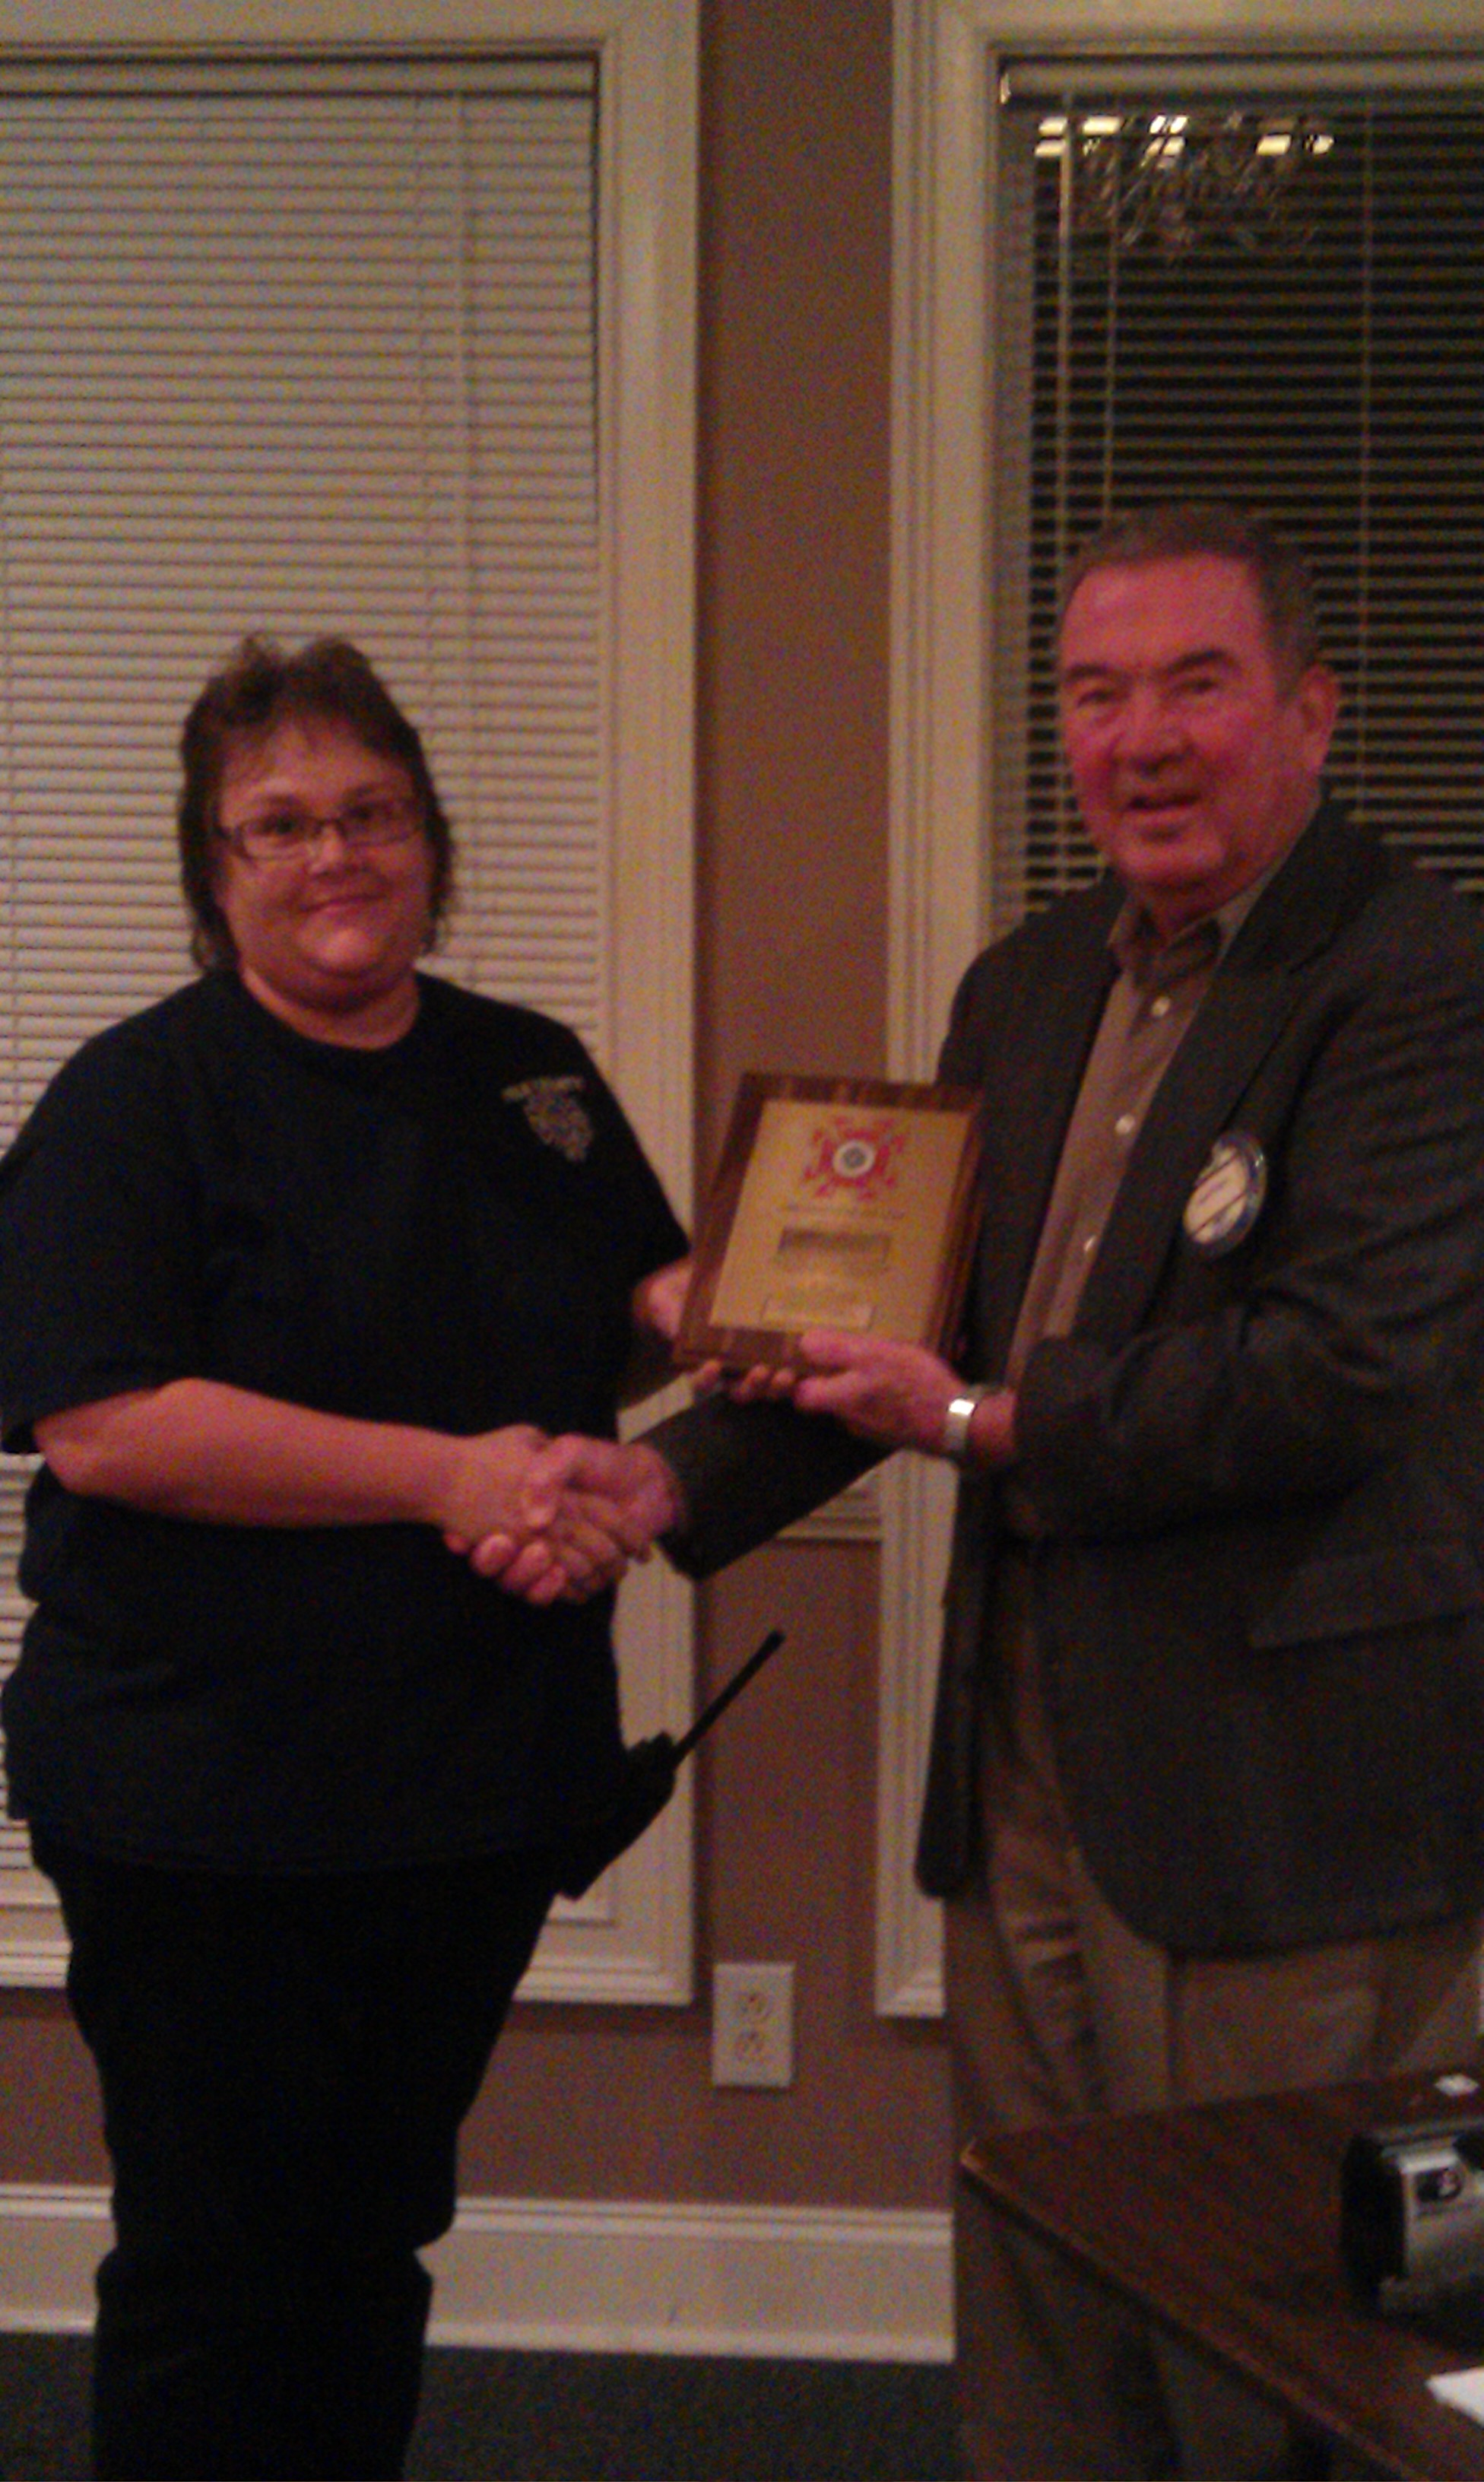 Susan Jackson Fireman of the Year